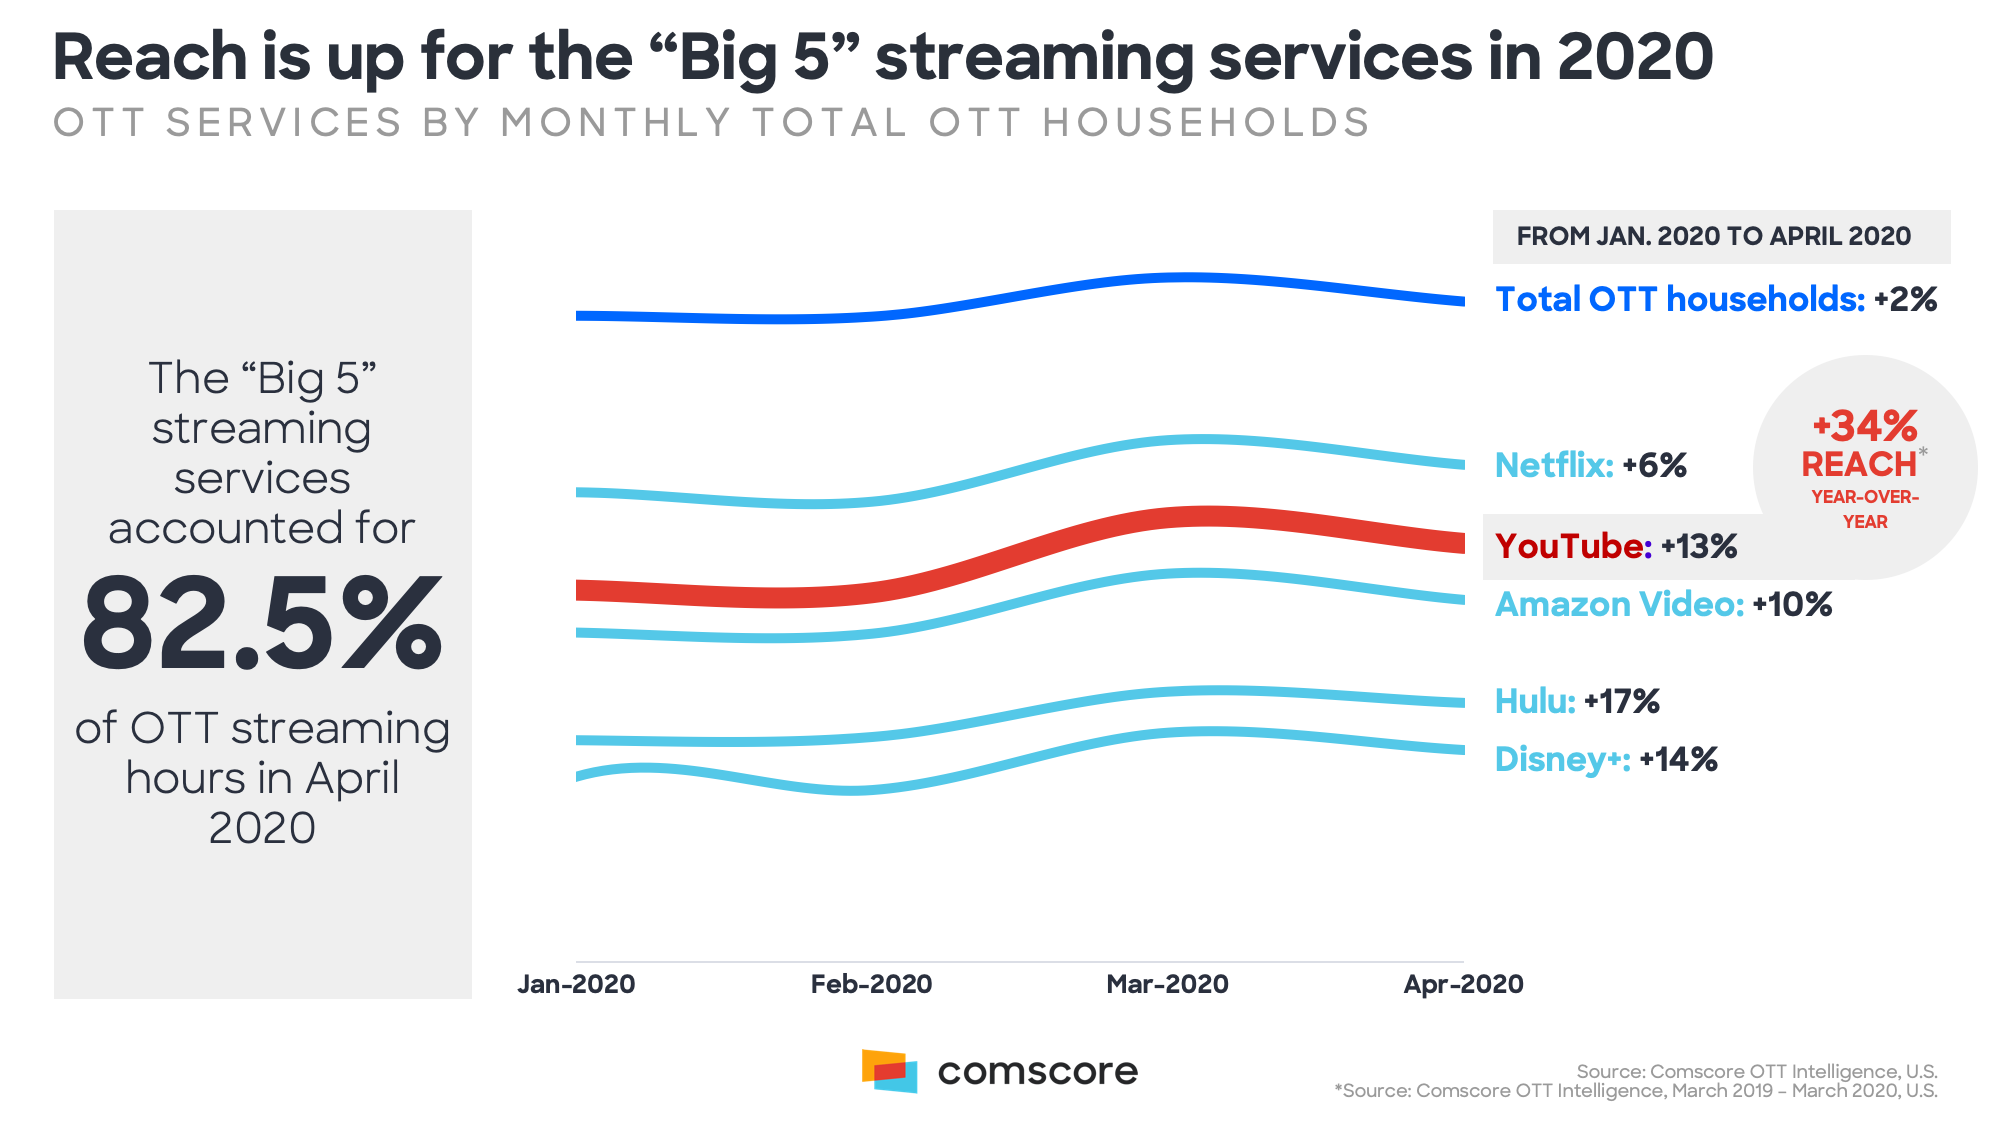 Reach is up for the Big 5 Streaming Services in 2020